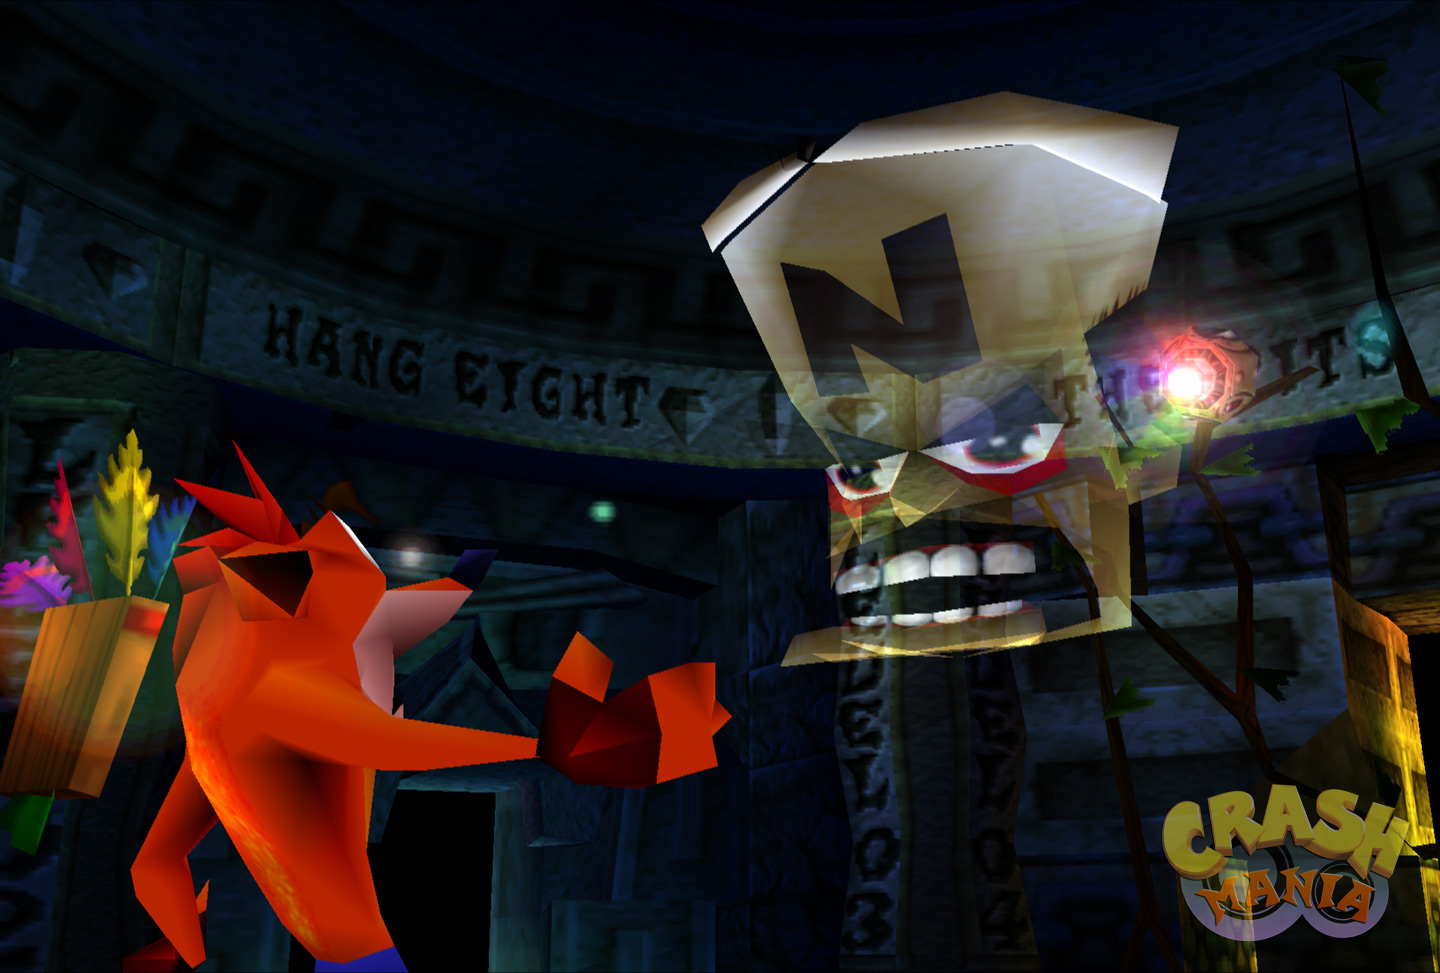 Cortex communicates with Crash from his space station through a holographic projector.